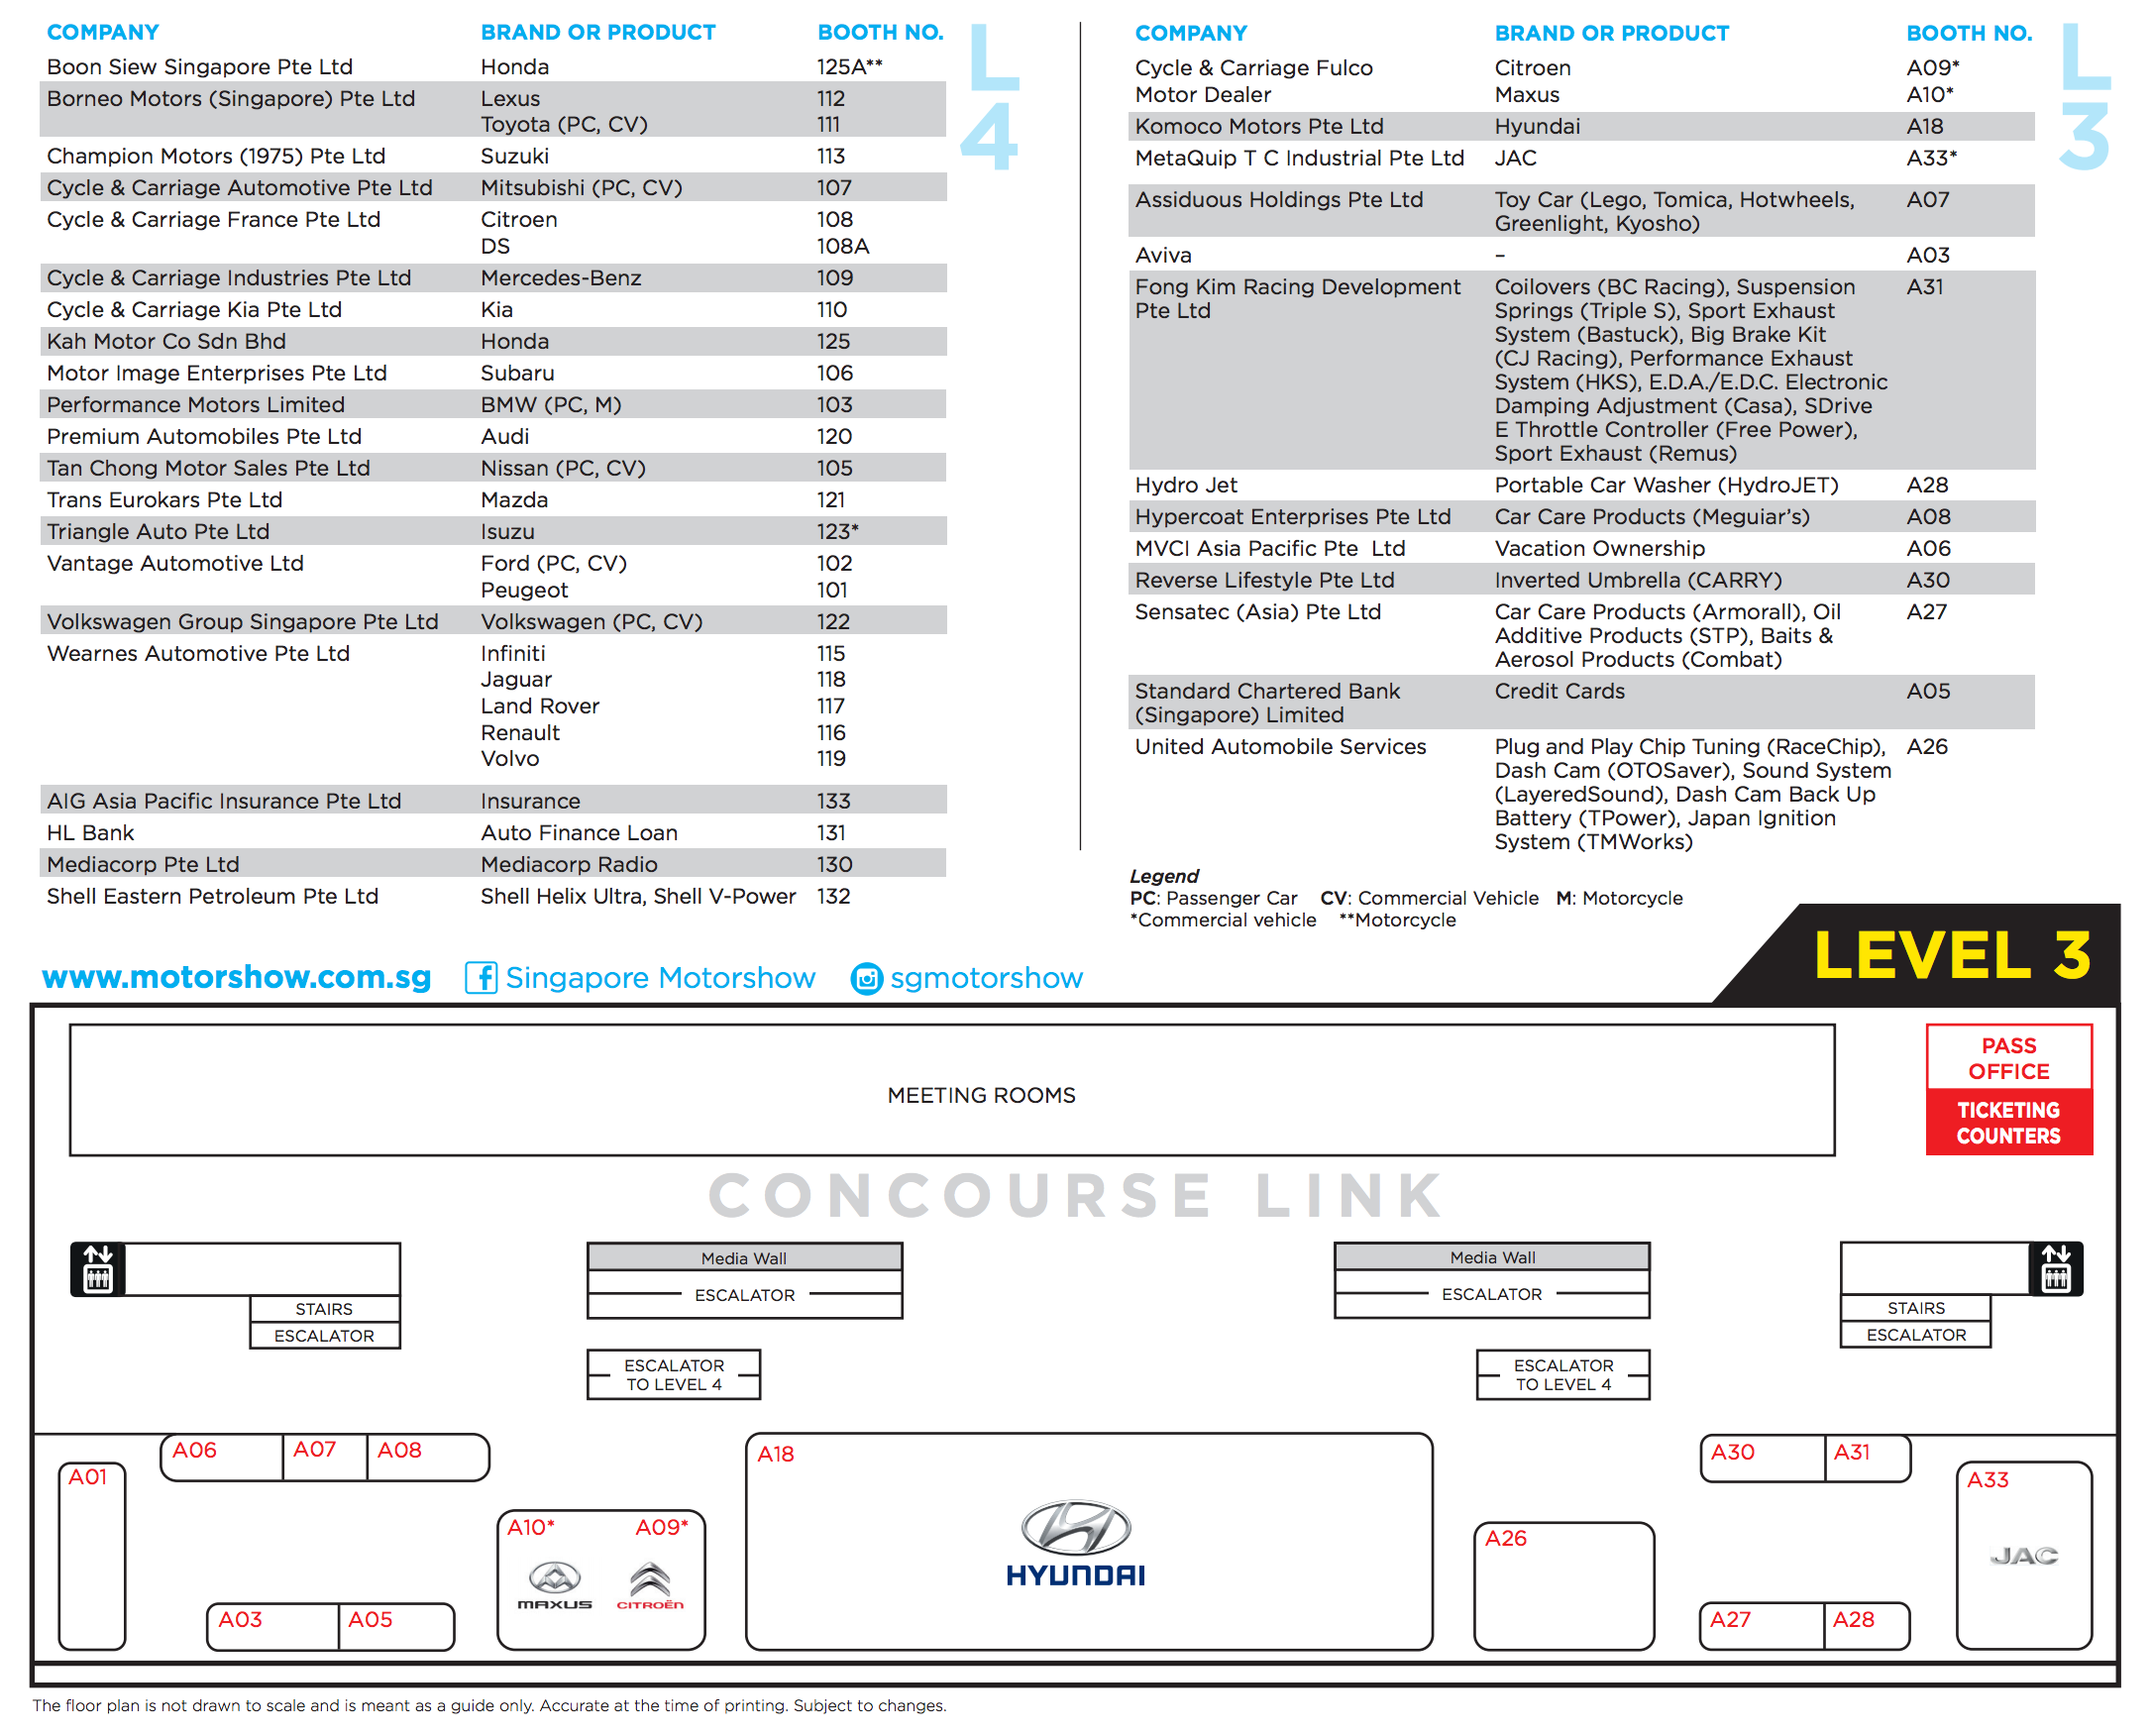 Singapore Motorshow 2017 Floor Plan